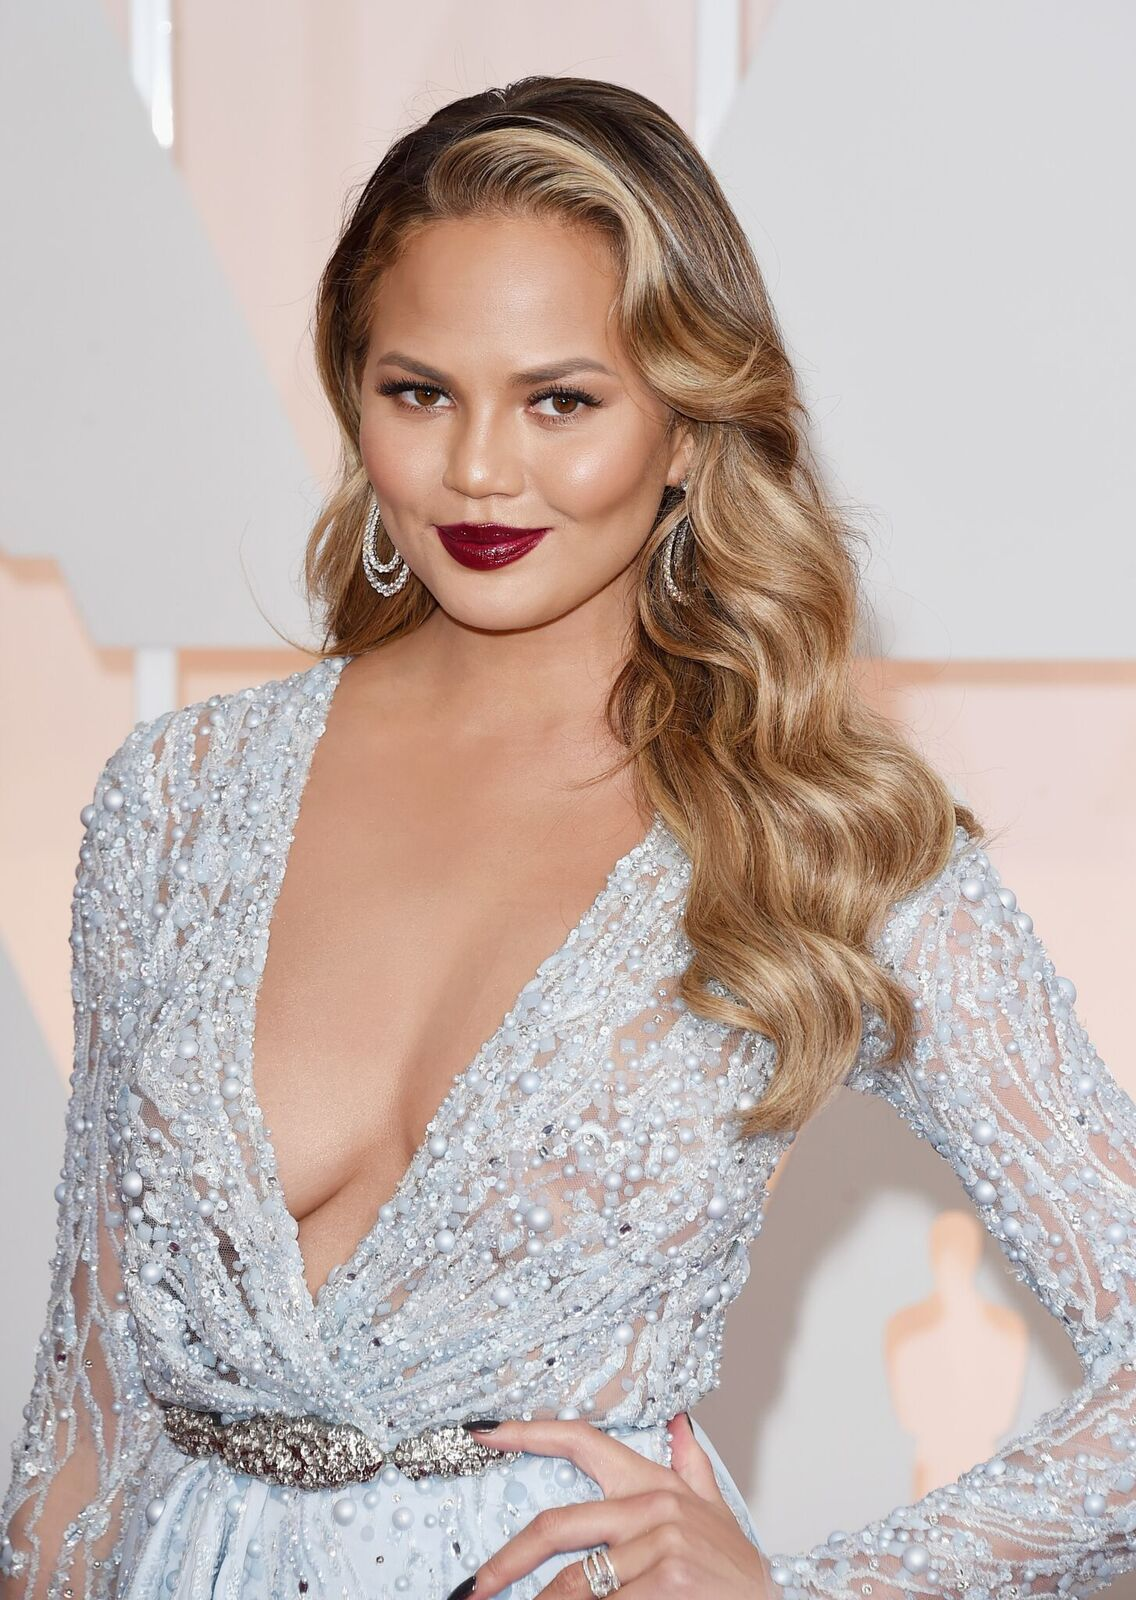 Chrissy Teigen at the 87th Annual Academy Awards held at the Hollywood & Highland Center on February 22, 2015 in California | Photo: Jason Merritt/Getty Images